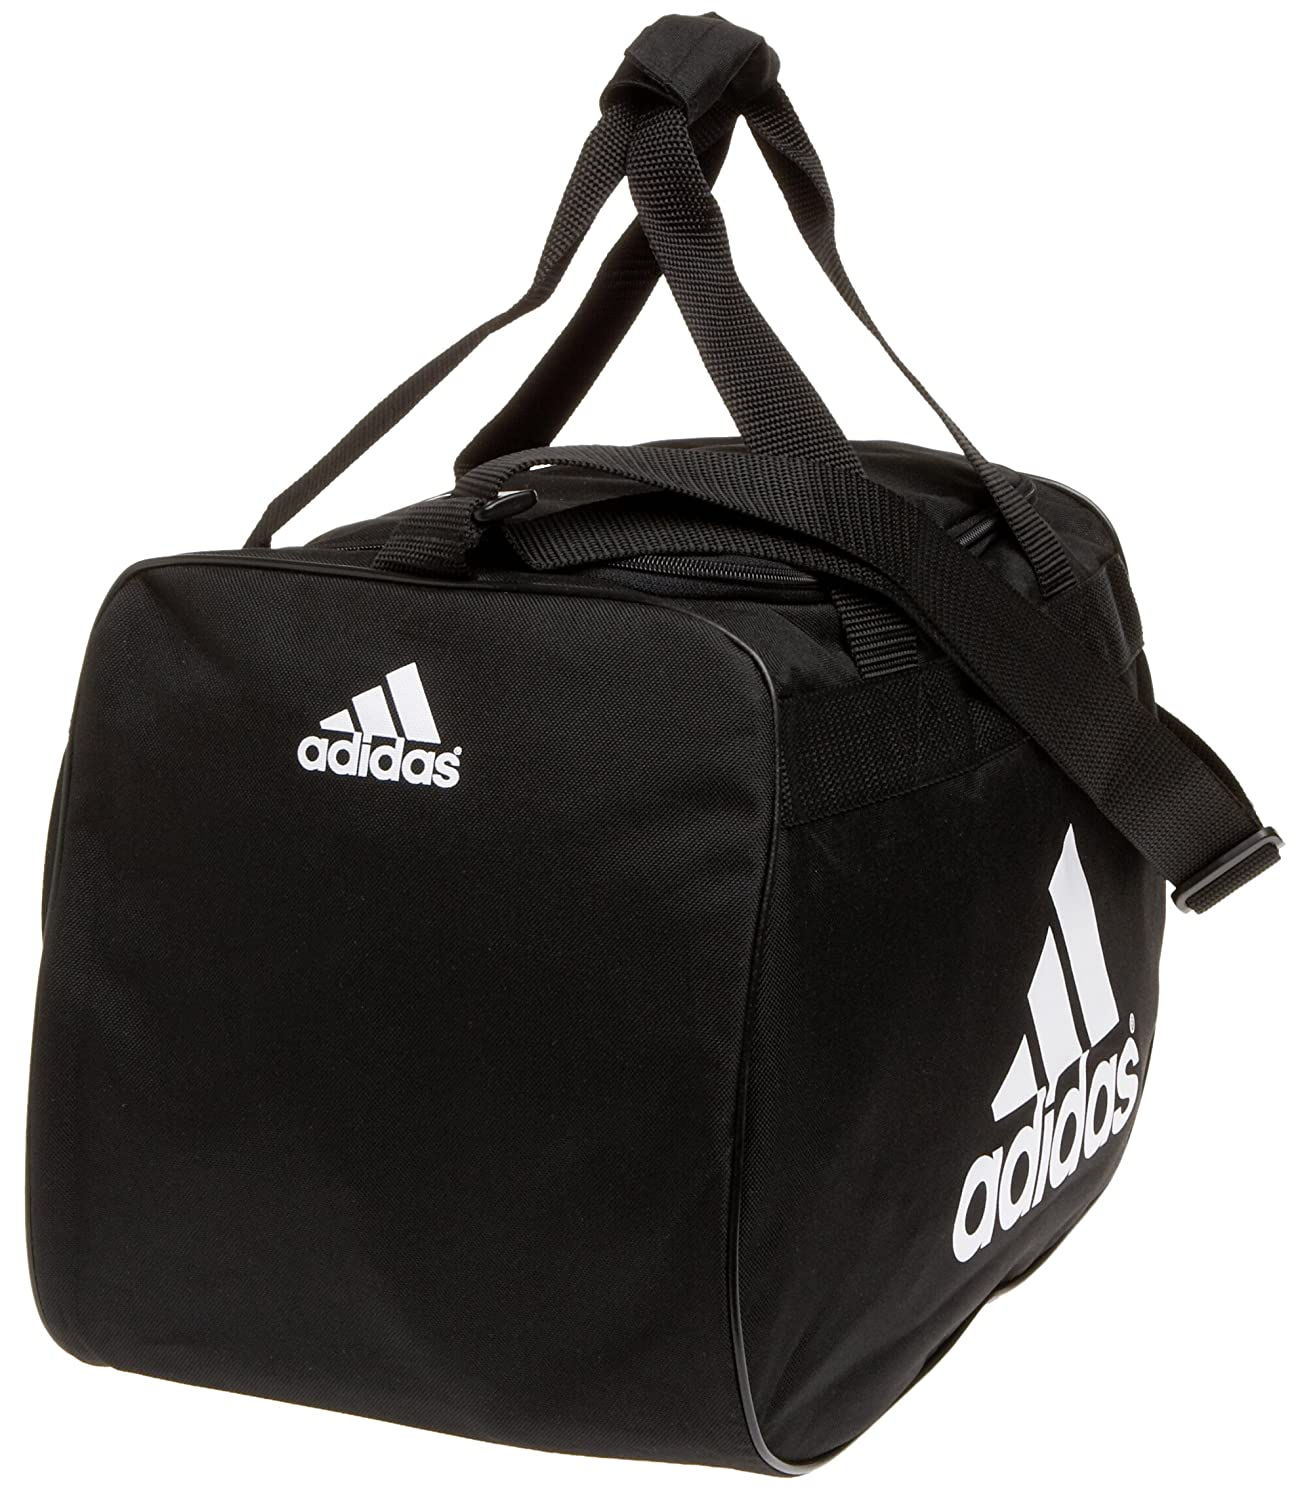 1a17f84f65b5 adidas duffel bag small on sale   OFF30% Discounts